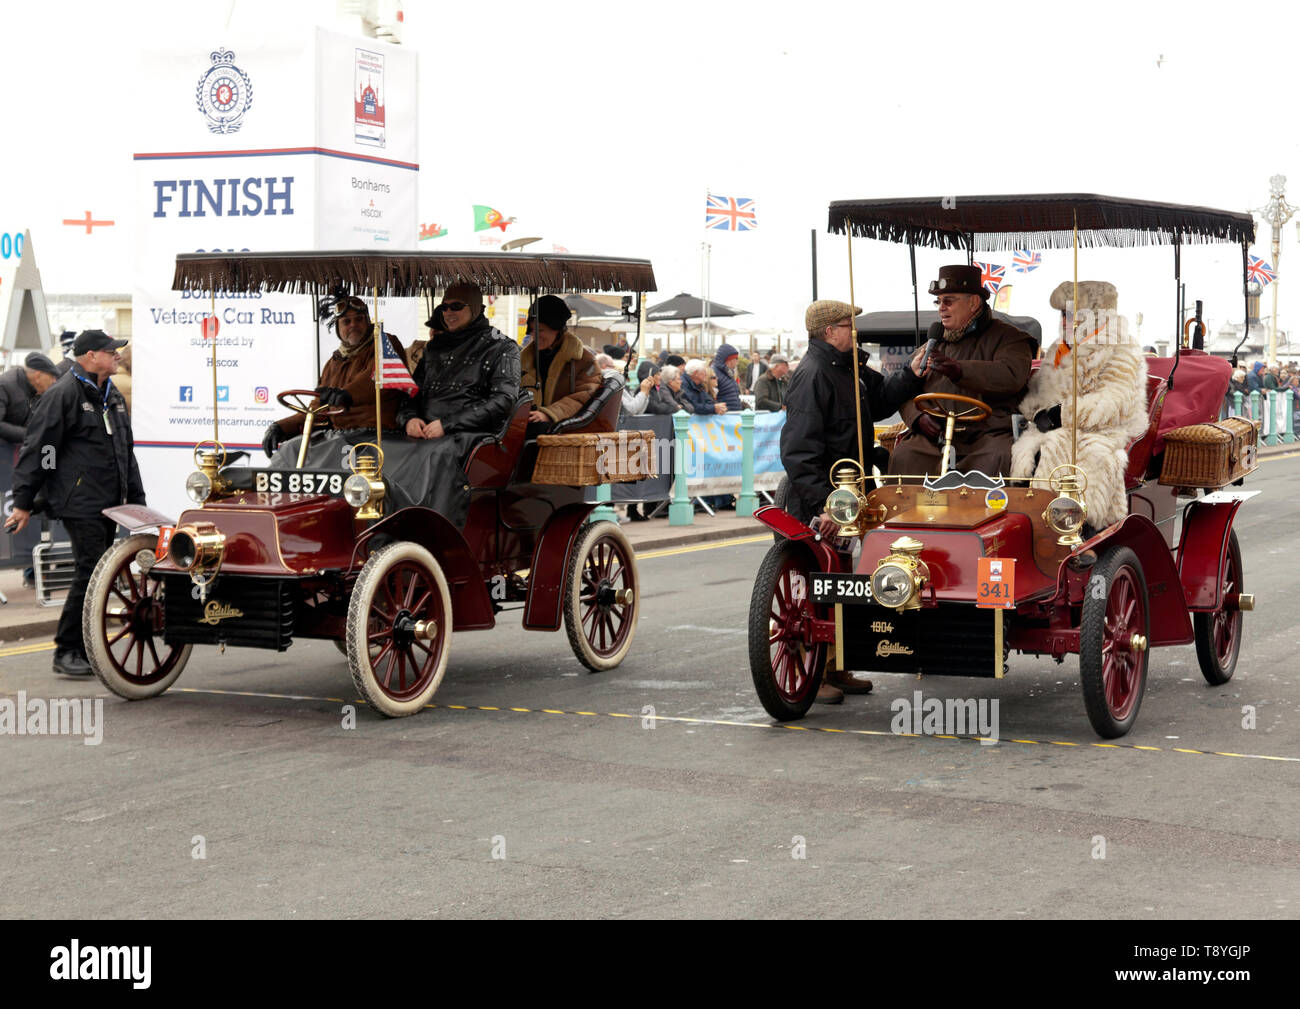 Two 1904 Cadillacs  lined up at the finish of the 2018 London to Brighton Veteran Car Run - Stock Image